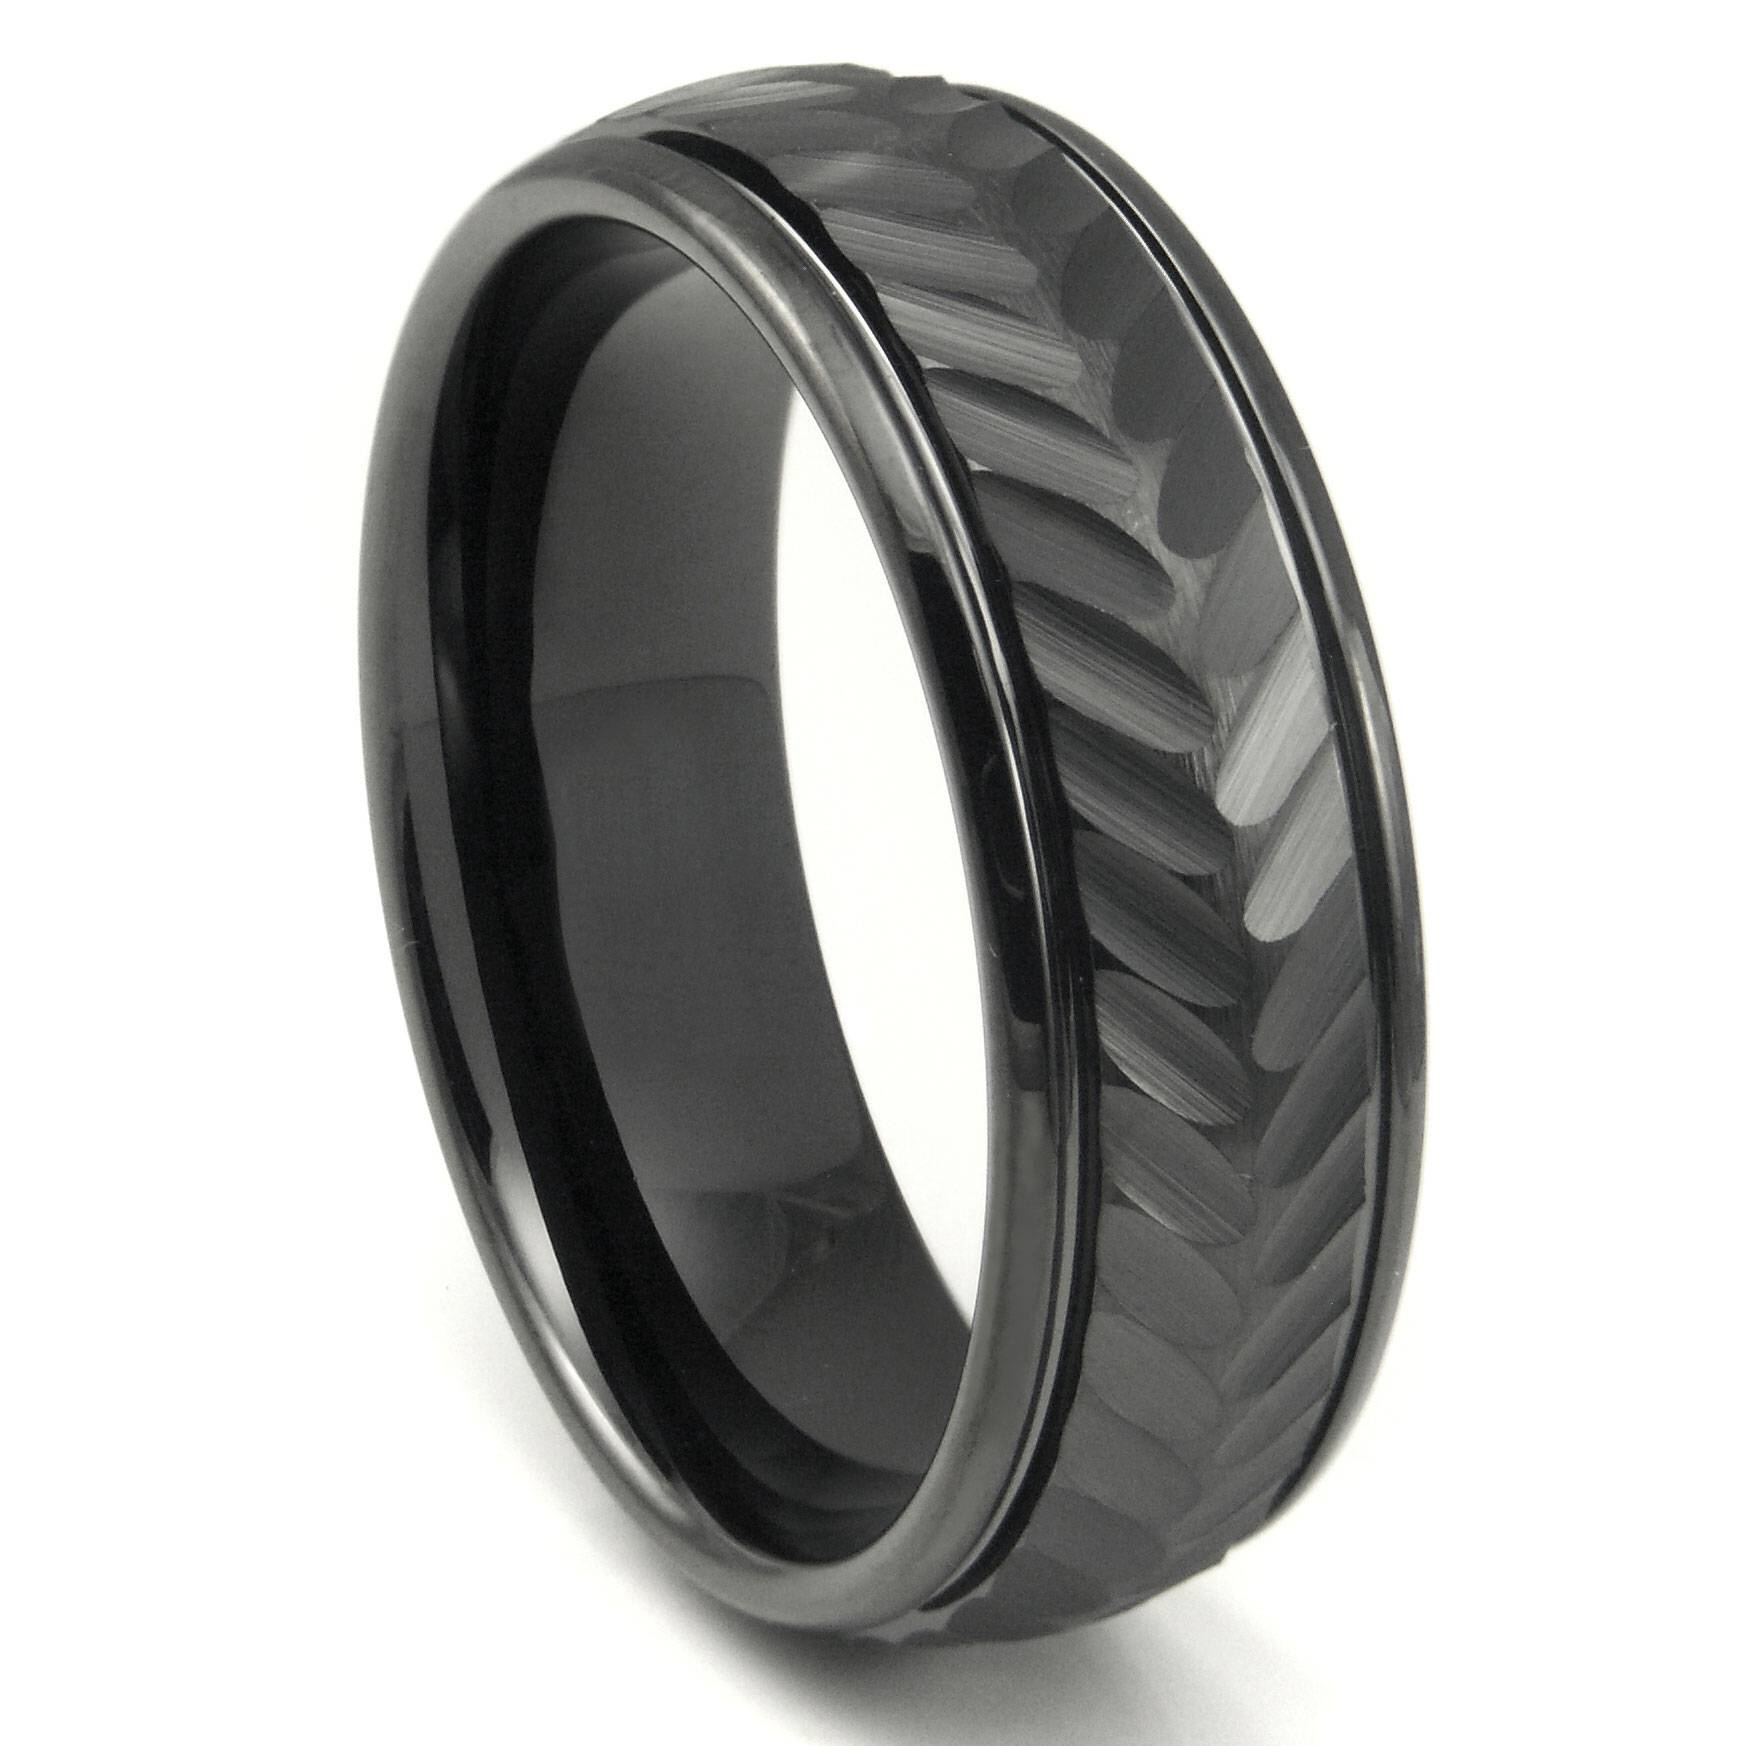 Black Tungsten Carbide 8Mm Chevron Newport Wedding Band Ring For Strongest Metal Wedding Bands (View 3 of 15)